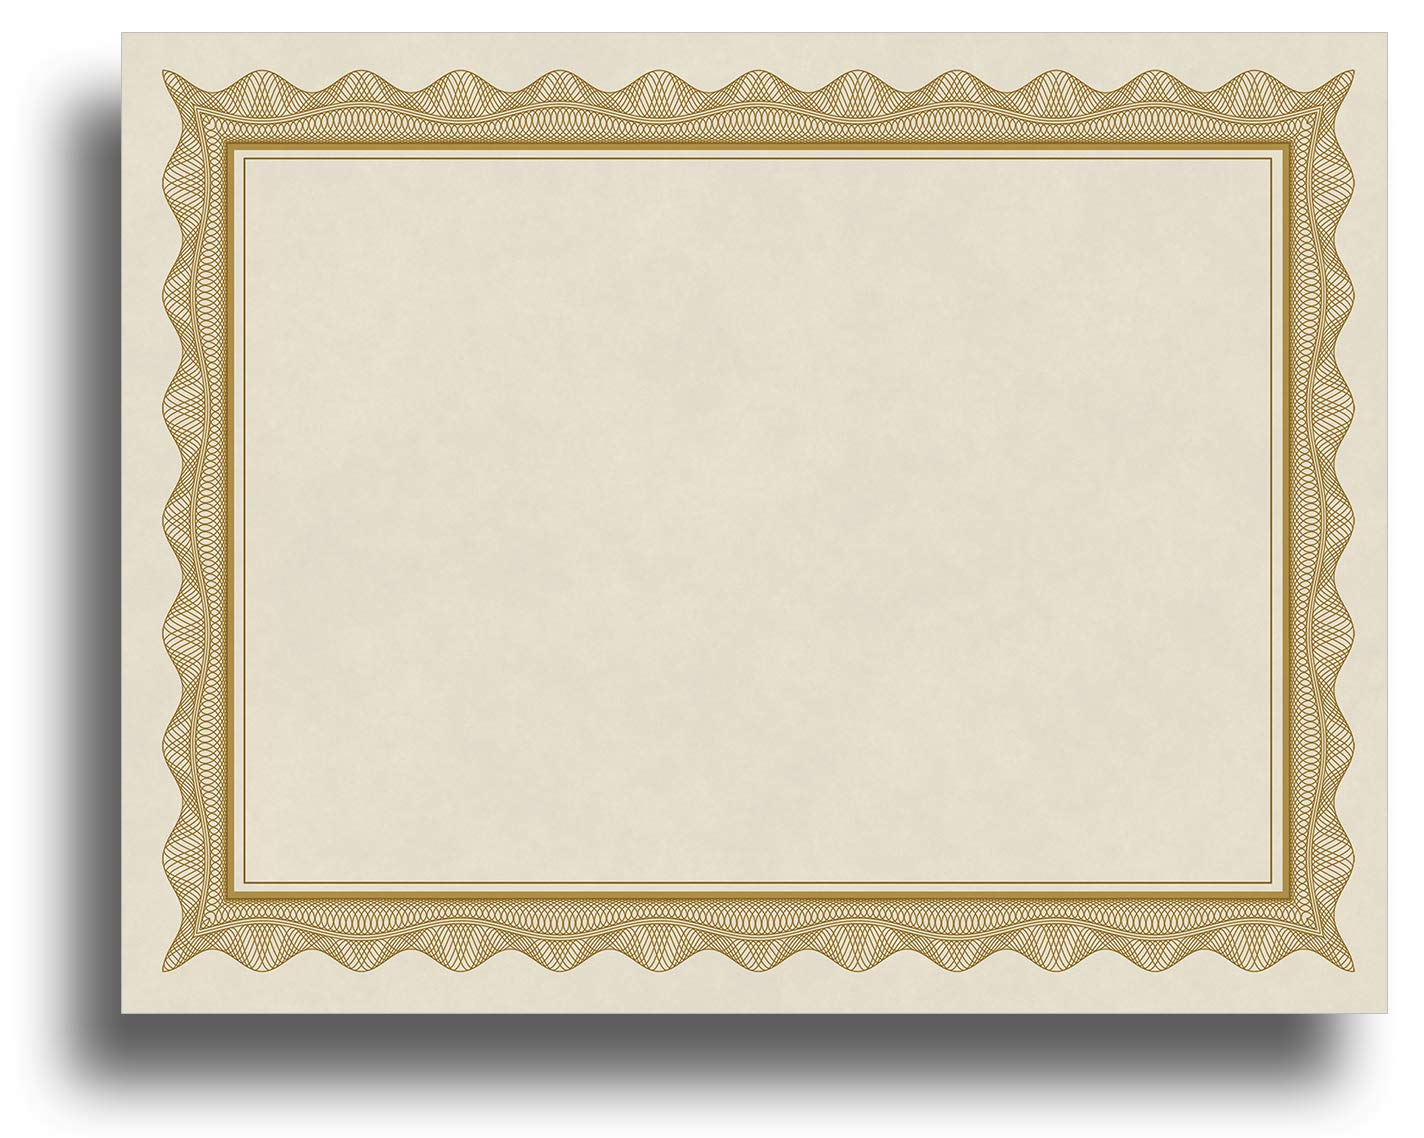 Blank Parchment Certificate Paper for Awards - Works with Inkjet/Laser Printers - Measures 8 1/2'' x 11'' - Gold Border - 250 Sheet Pack by Desktop Publishing Supplies, Inc.